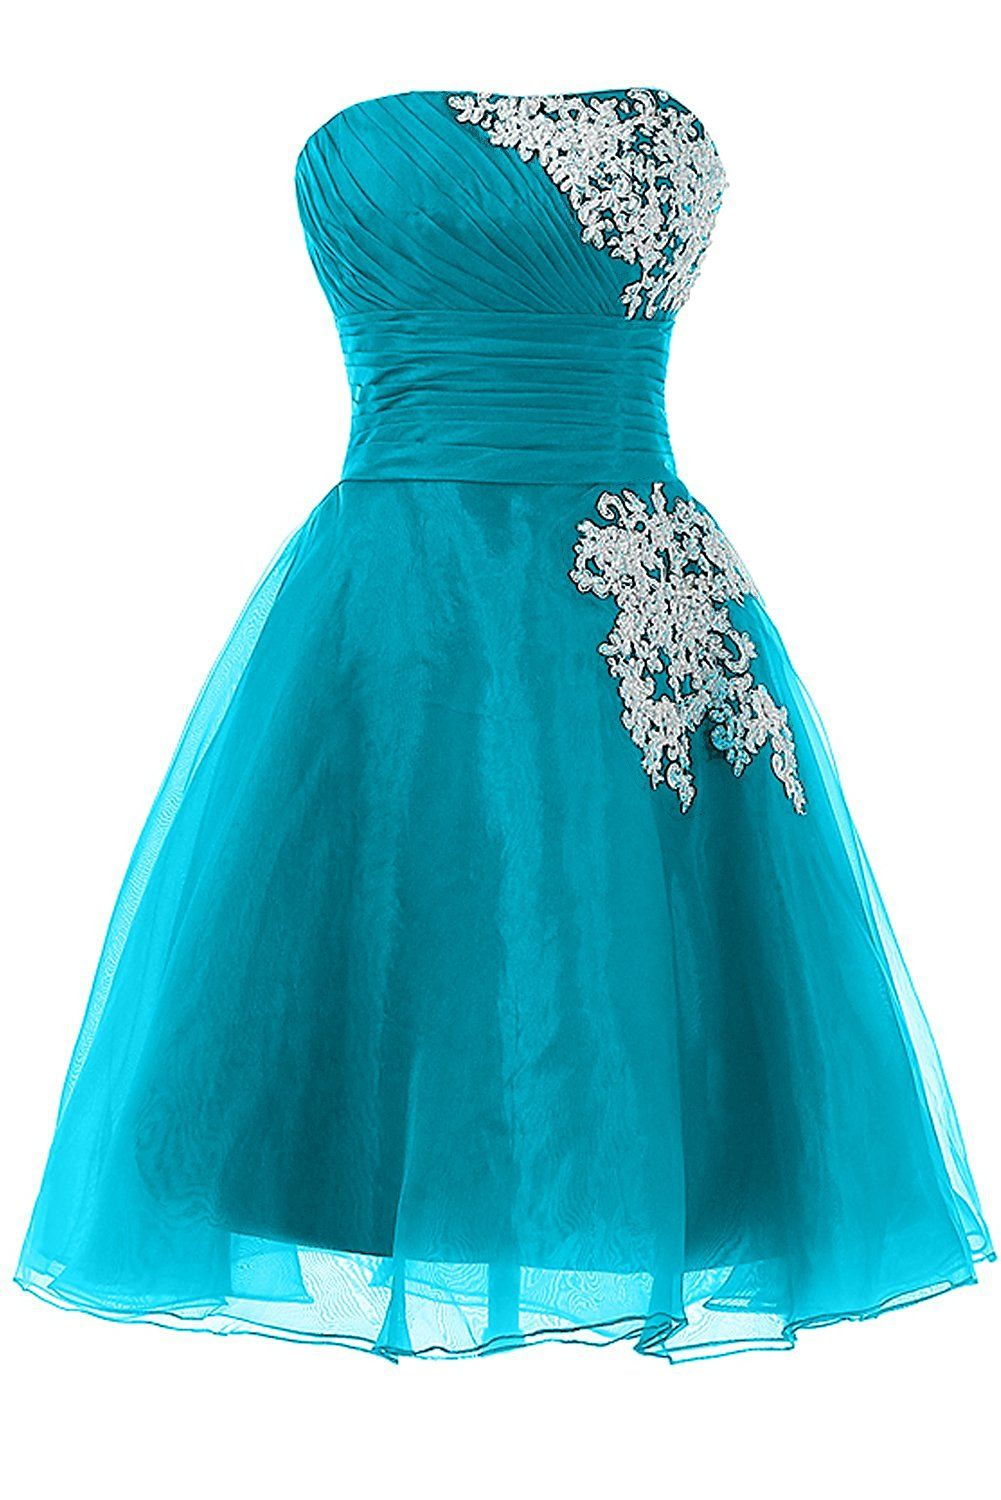 DINGZAN Organza and Lace Mini Sweet 16 Party Dance Prom Homecoming ...